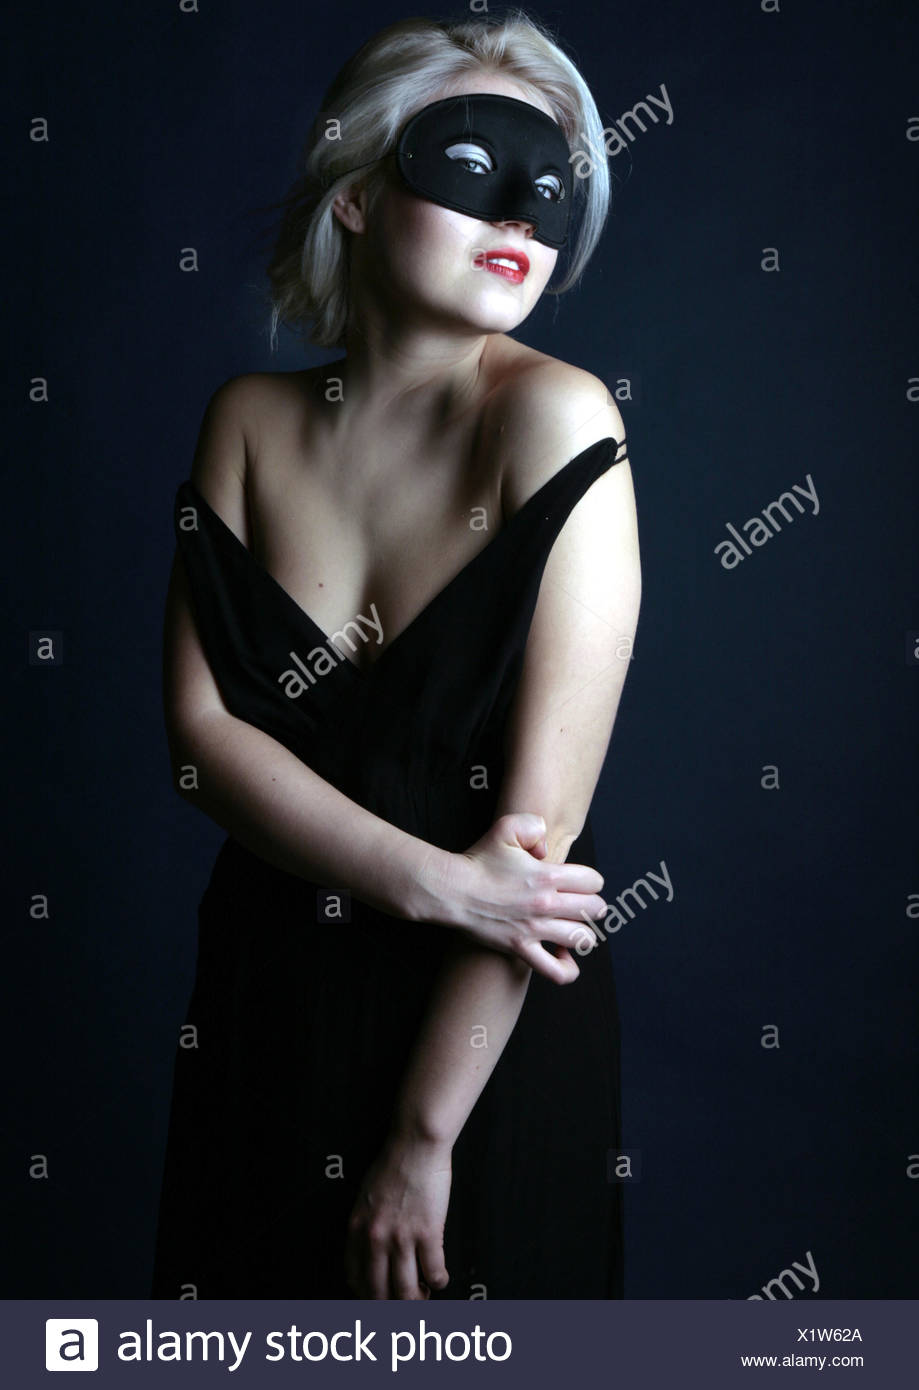 woman with mask - Stock Image